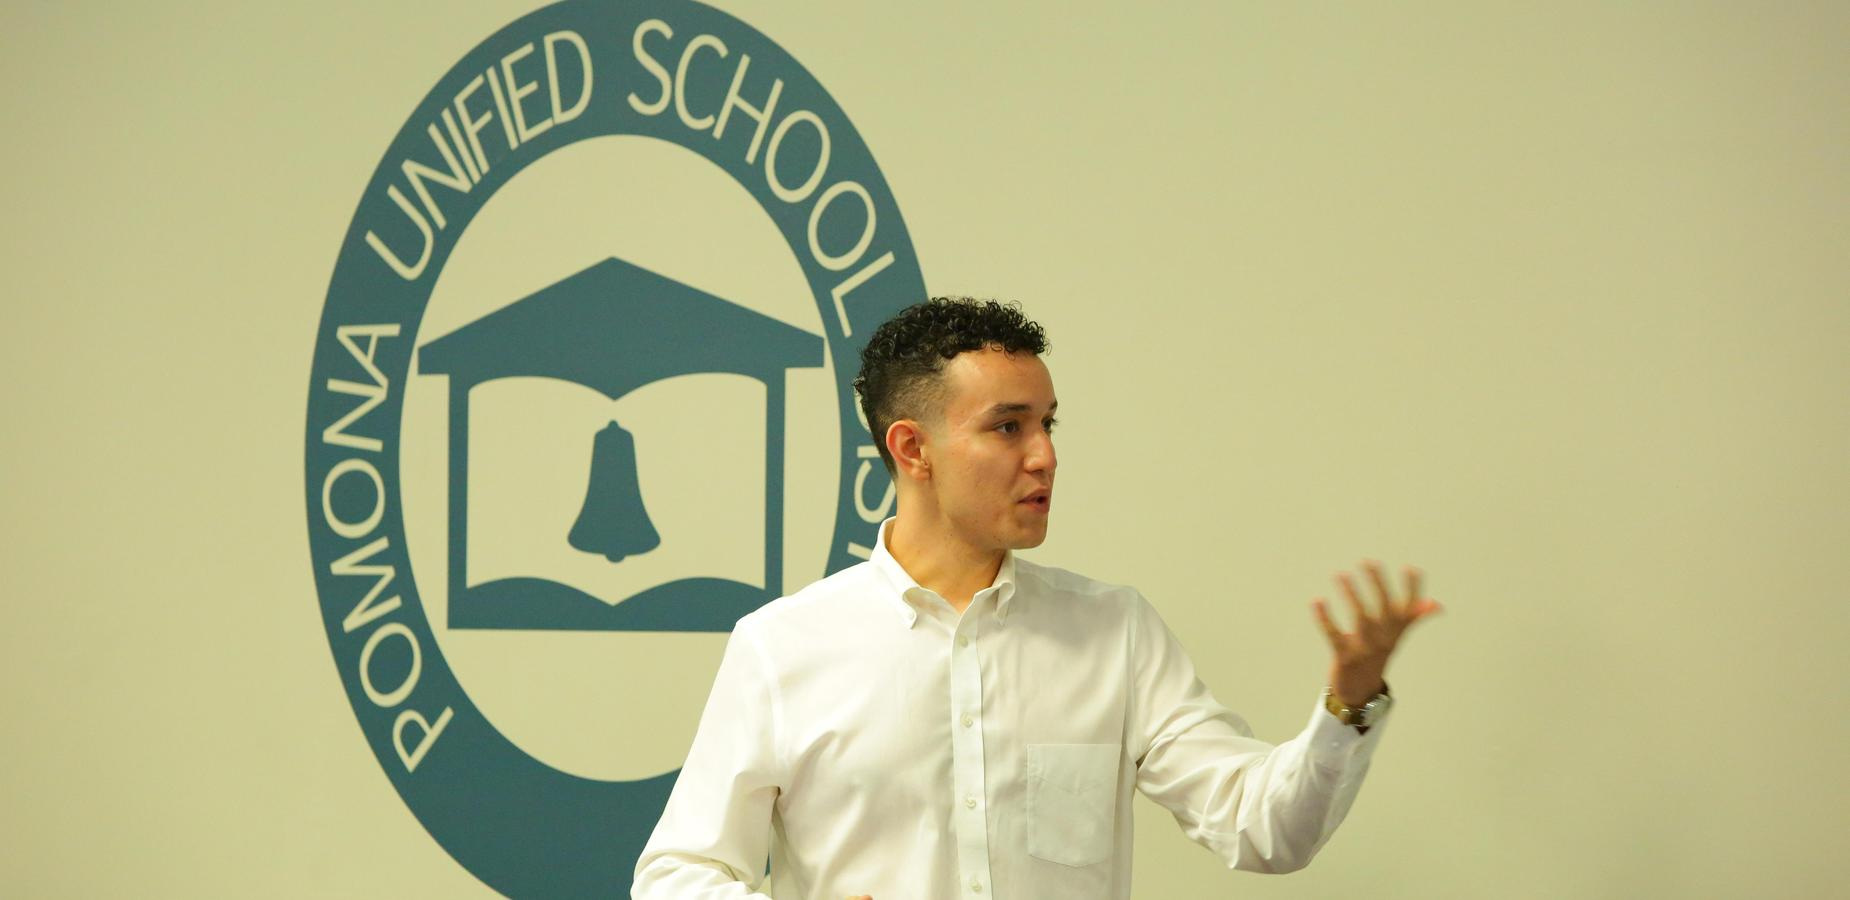 Welcome new teachers! Juan Ledesma is a @vejarPUSD and @GareyHighPUSD Alumn who just graduated from UCLA!!! today he joins our #PUSD Family. #orientation #teacherorientation #newteachers #pusd #pomonaunified #proud2bepusd — with Juan Humberto Ledesma Mendoza.